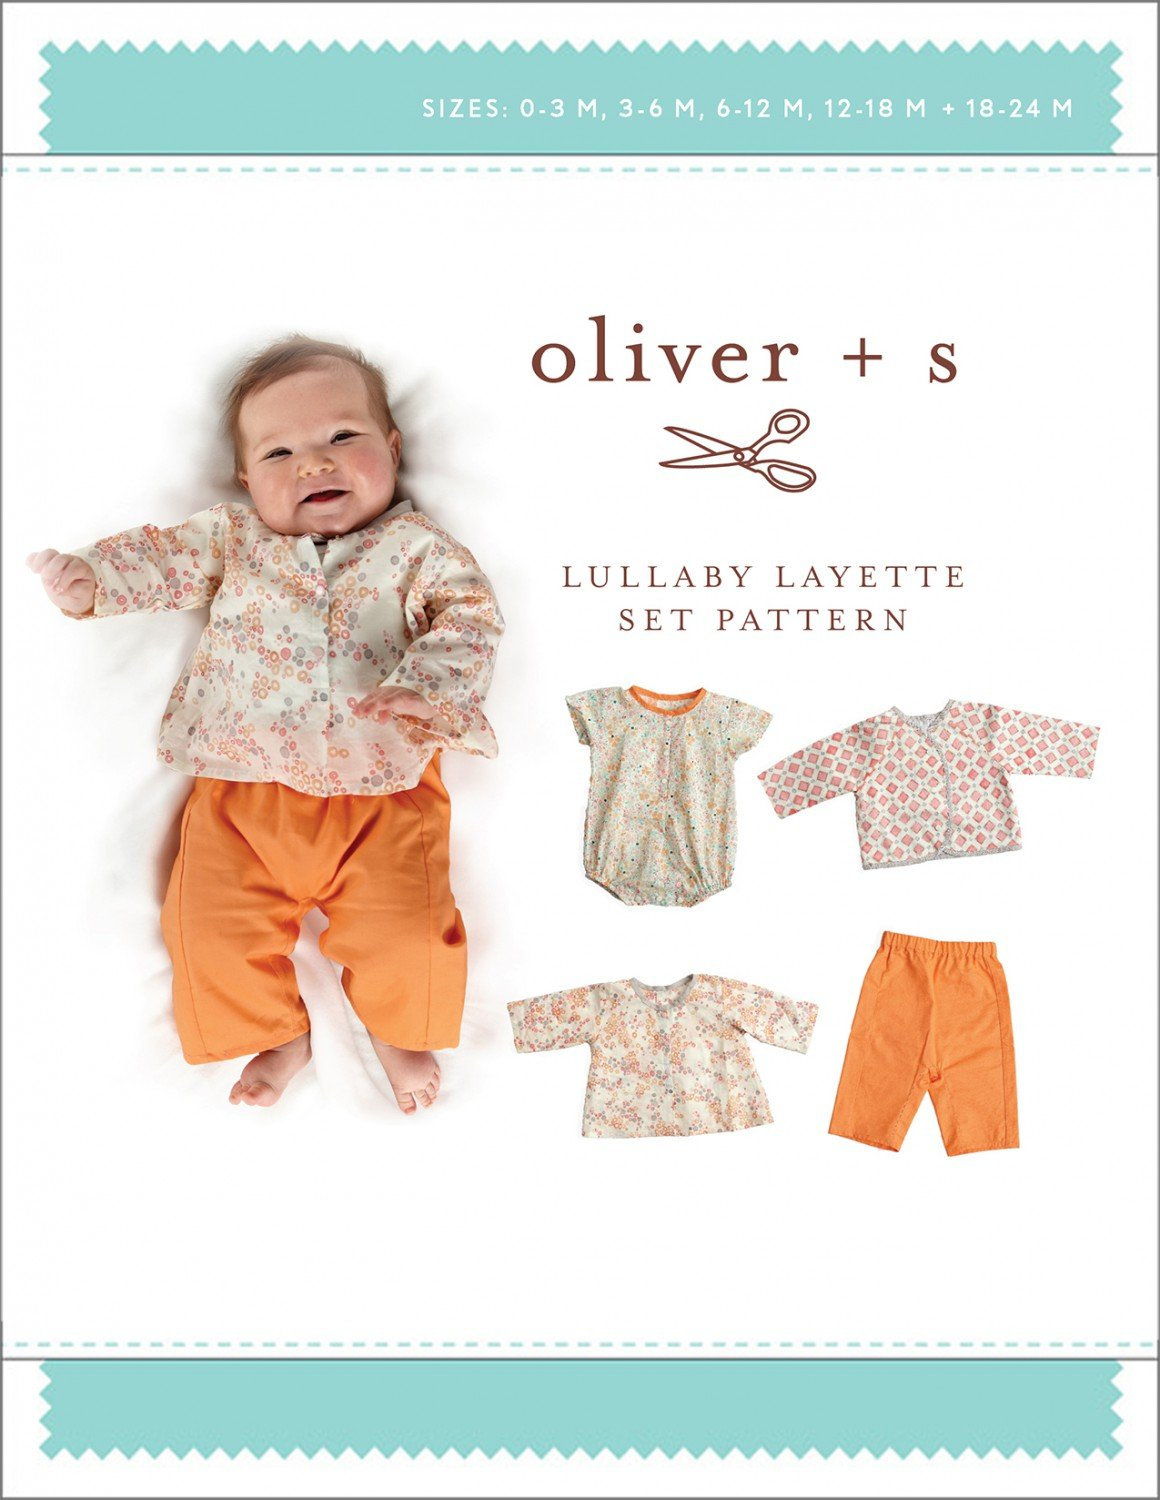 Pattern Lullaby Layette Baby Clothing Set - Olive + S